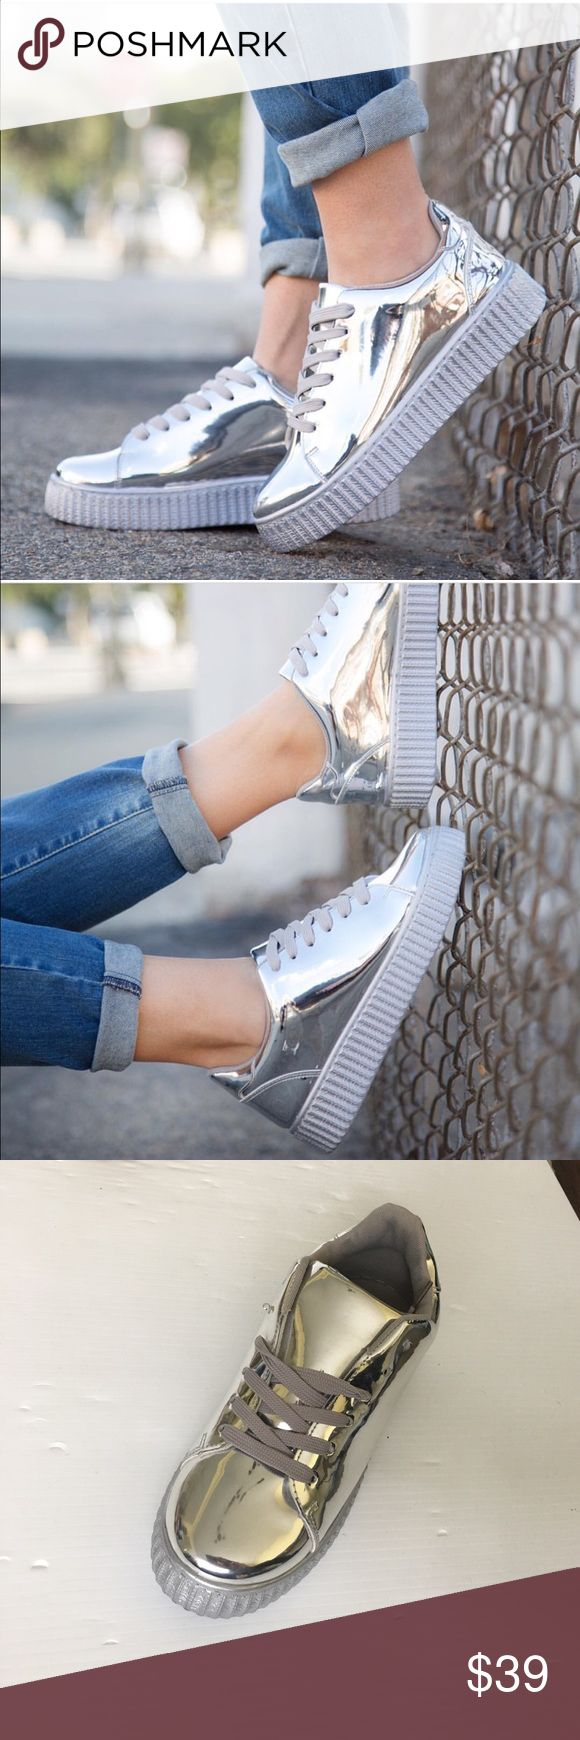 Silver sneakers New.. silver sneakers.. fits true to size NO TRADES OR HOLDS Shoes Sneakers